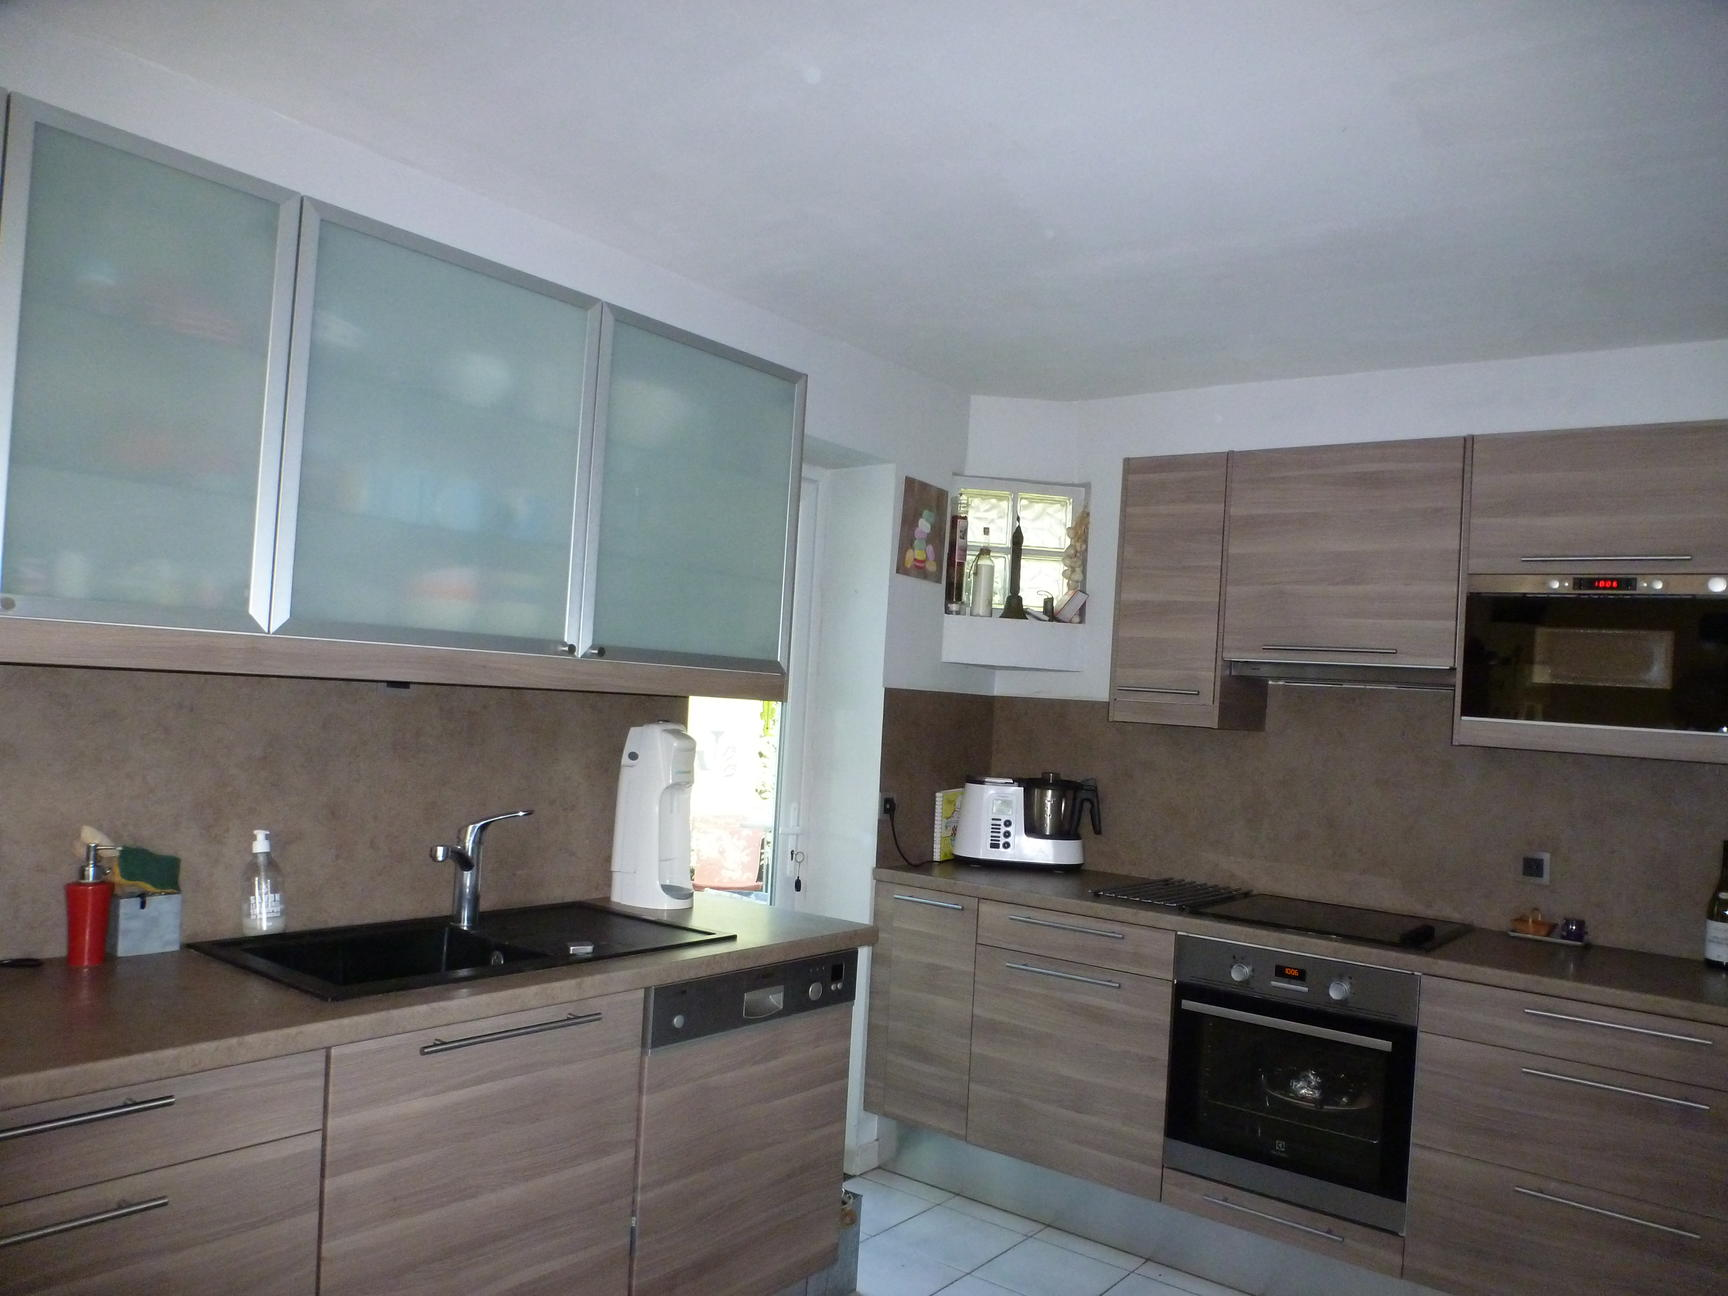 MAISON VERSANT OUEST 5 chambres - Dardilly